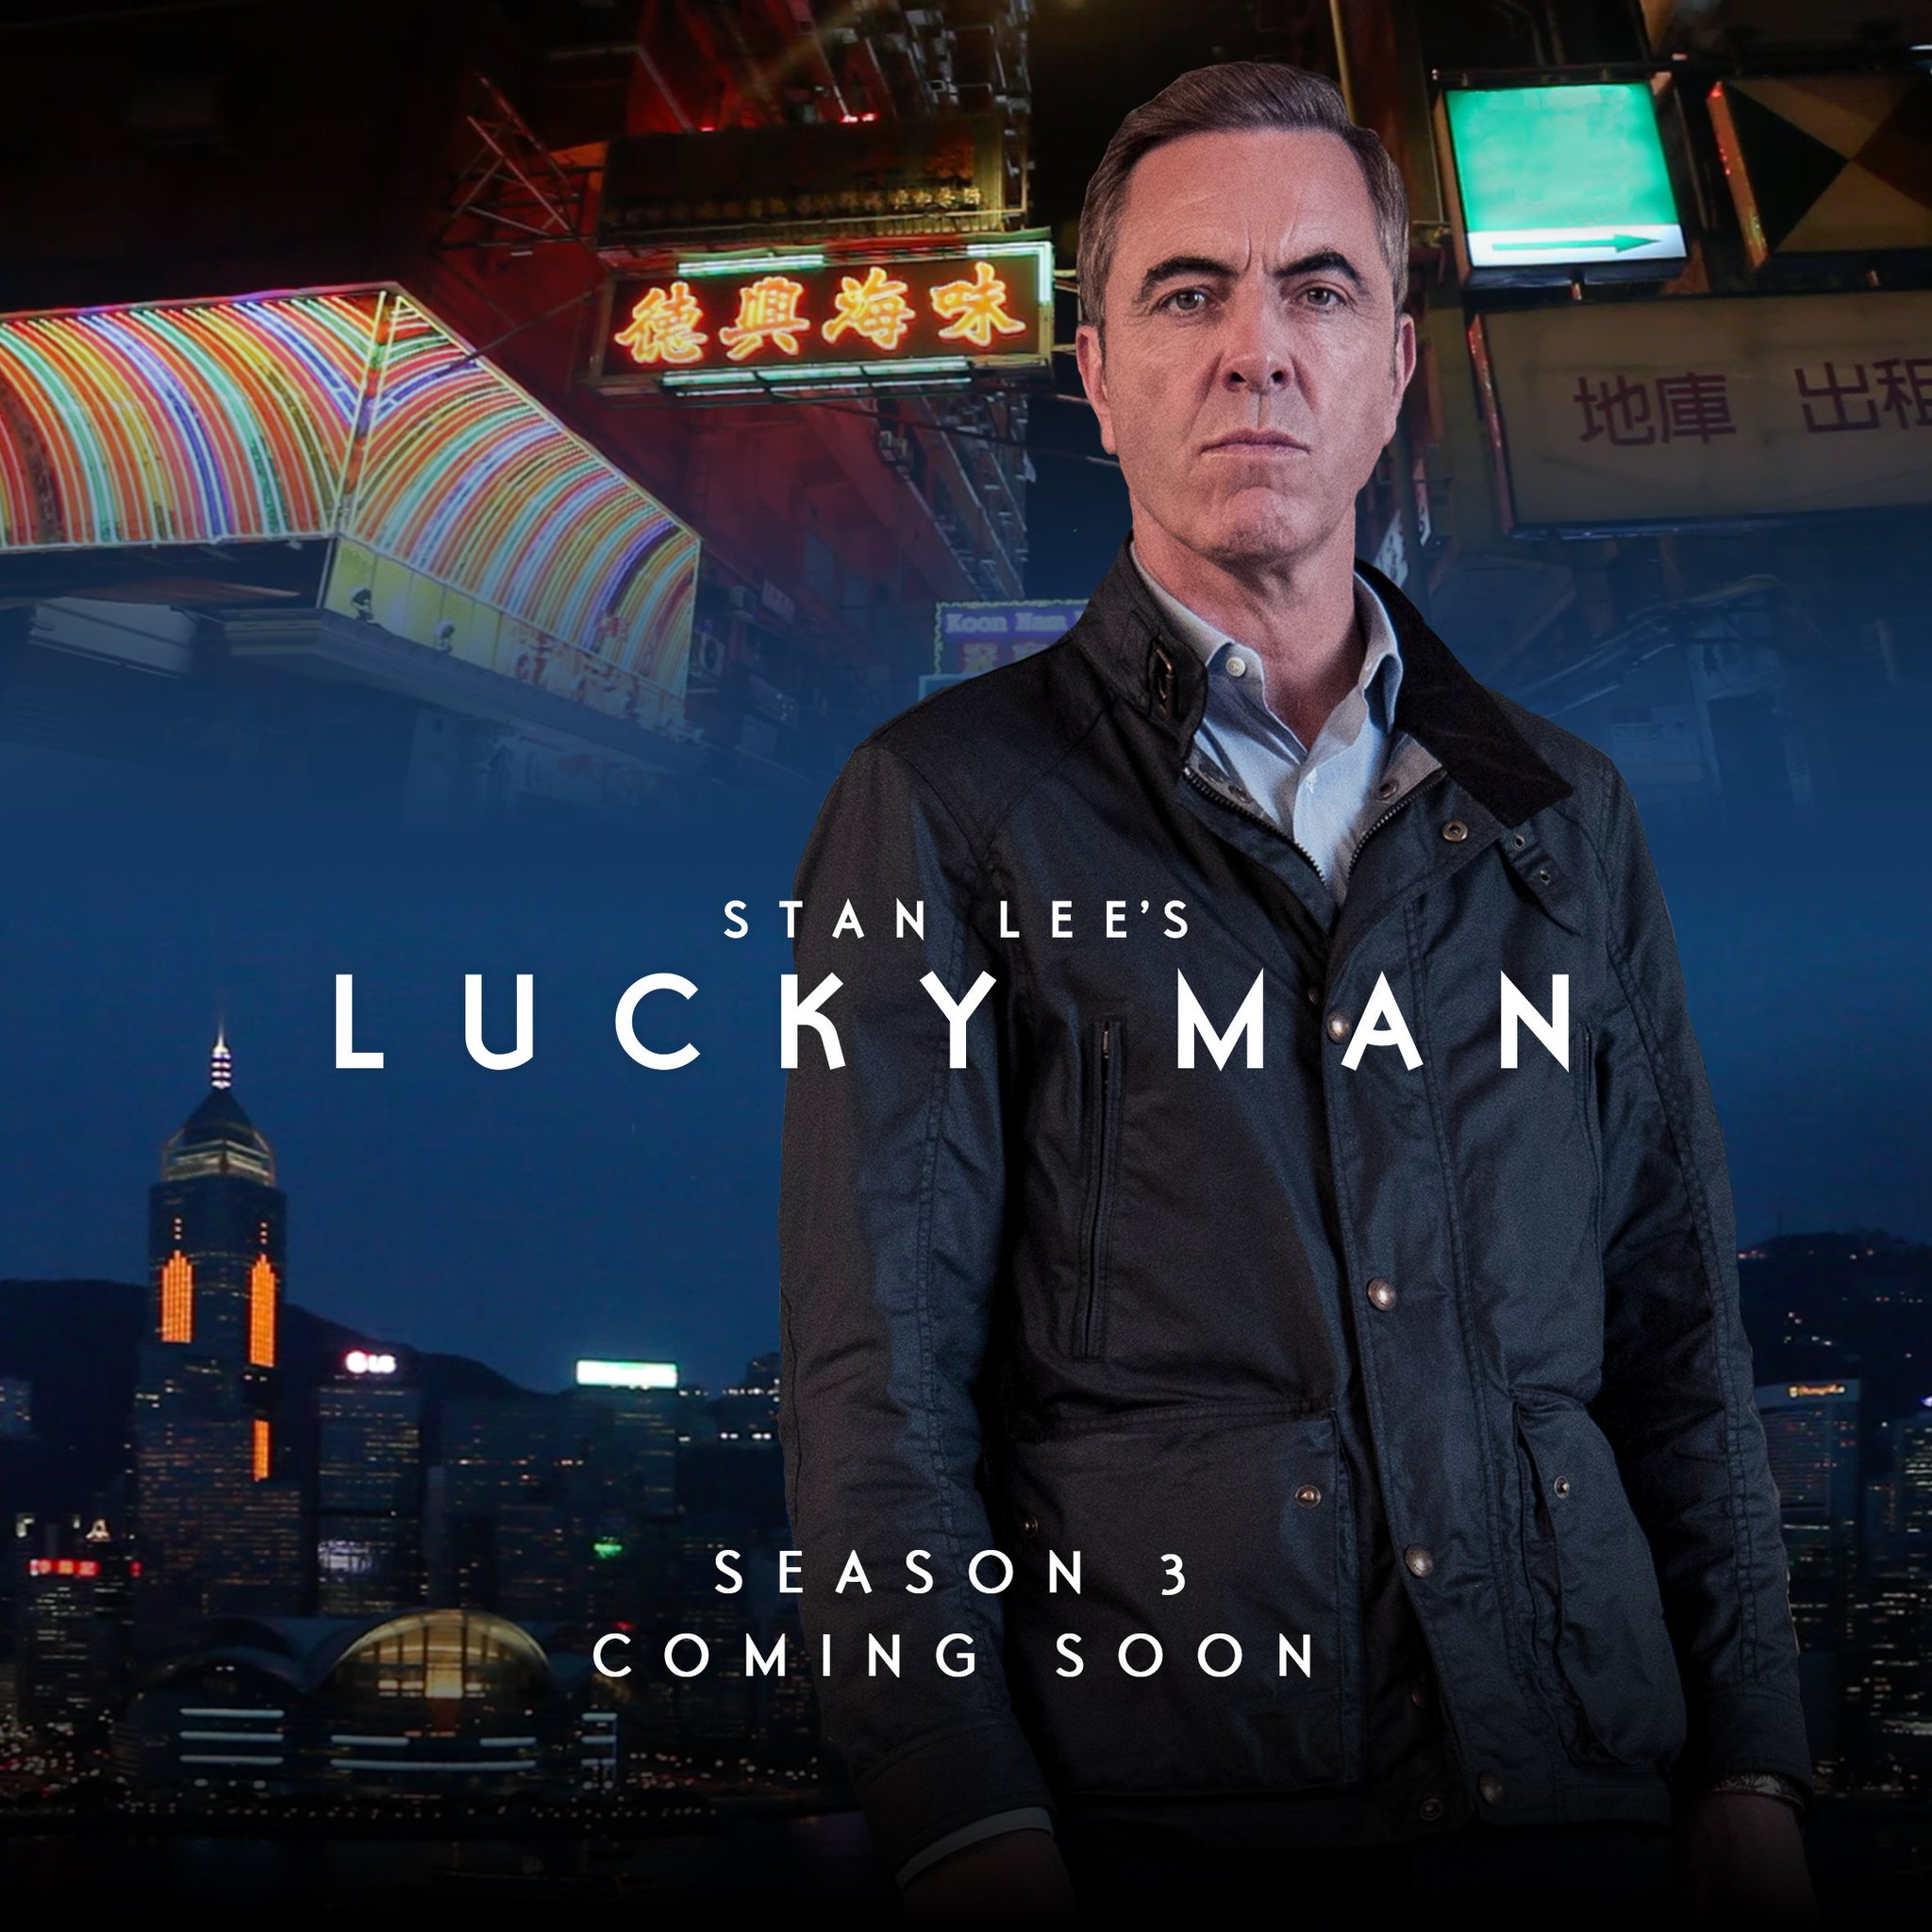 Good news - your luck is in!  Stan Lee's @luckyman season 3 is coming soon to @sky1! https://t.co/7E2uWOwSaV